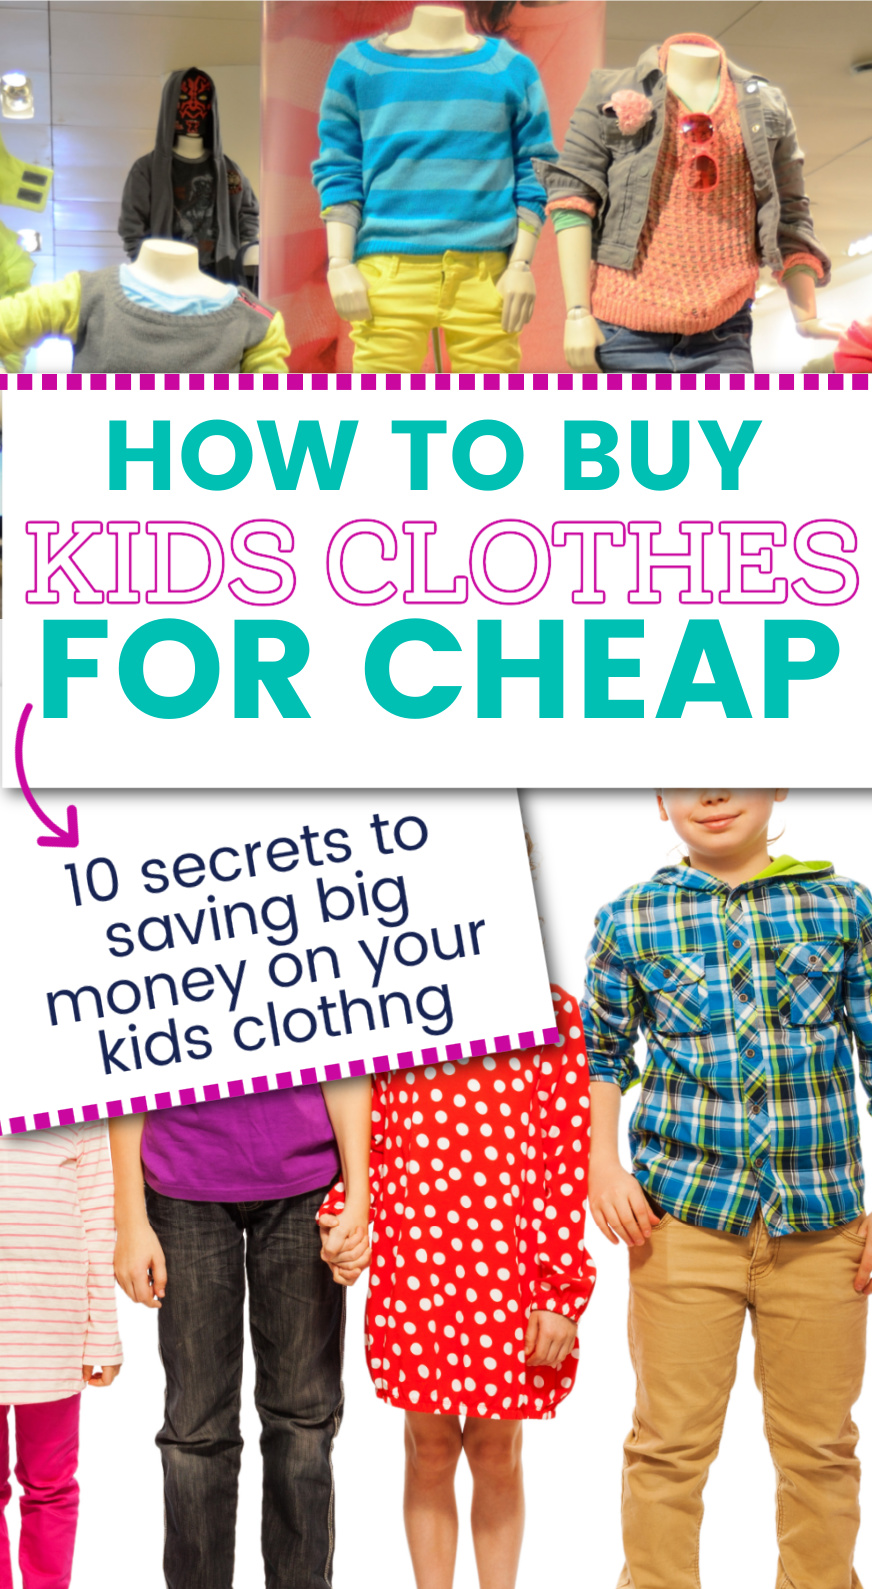 how to save money on kids clothes - parenting tips